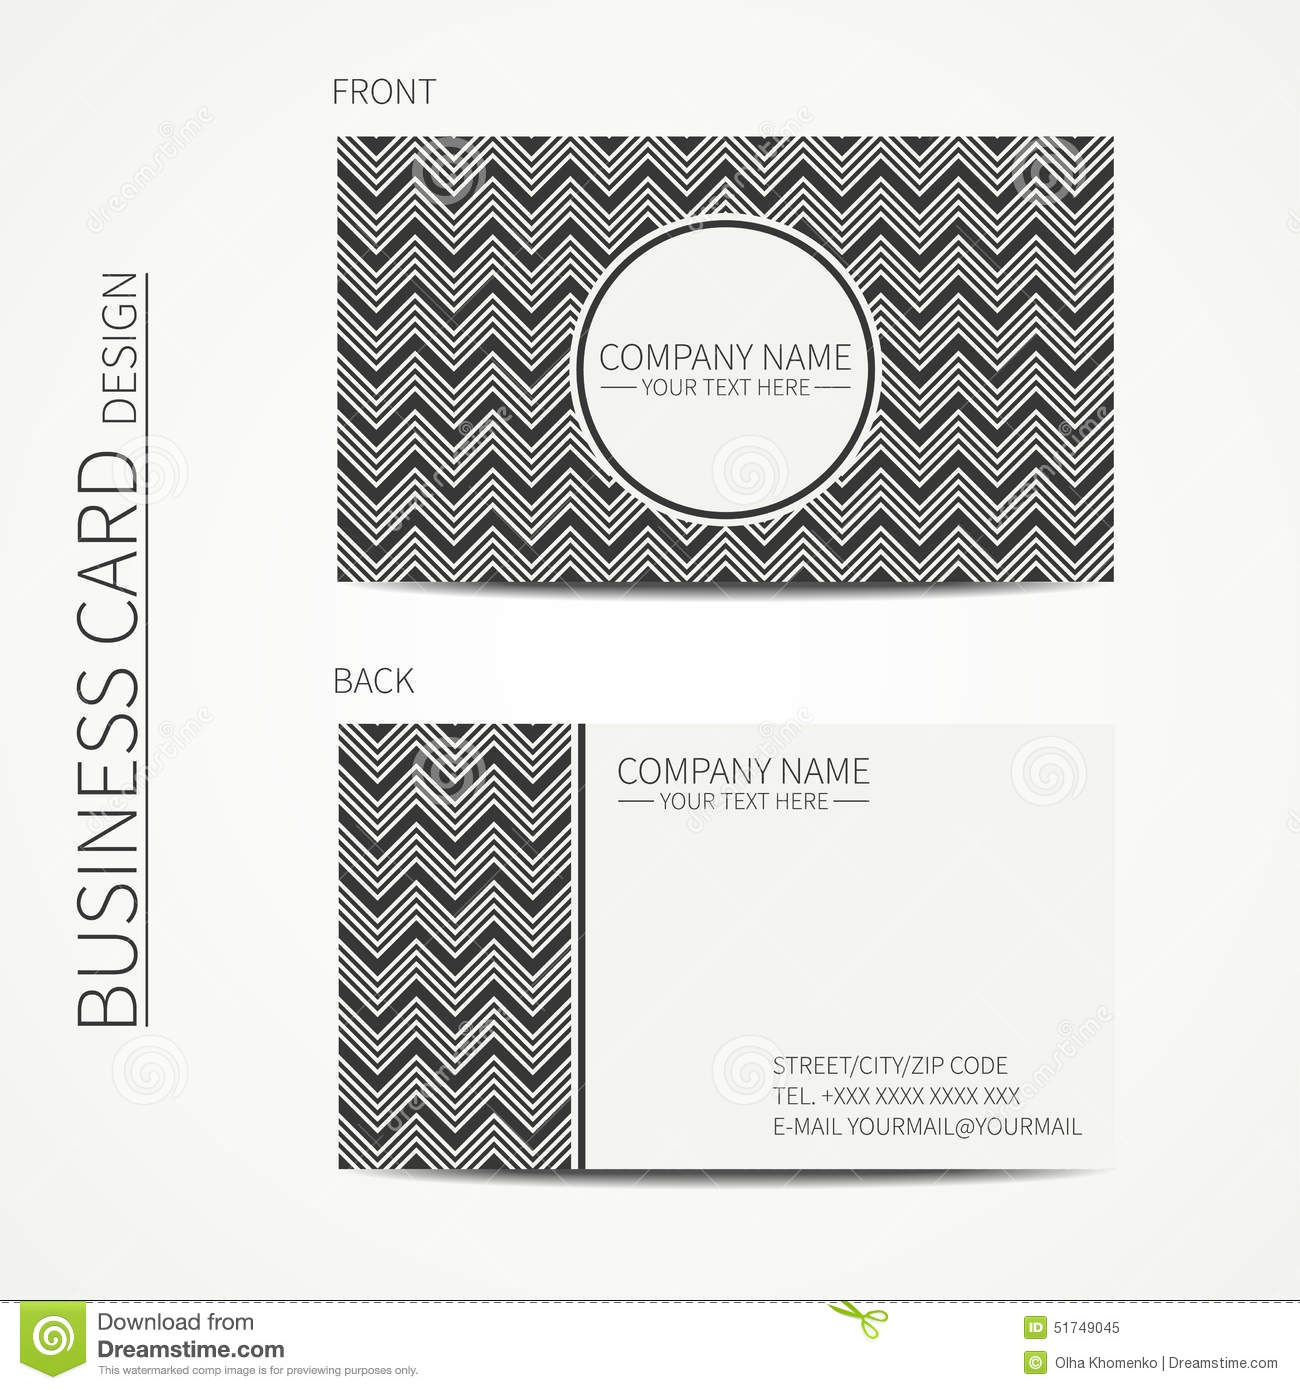 geometric monochrome business card template with vector illustration 57523420. Black Bedroom Furniture Sets. Home Design Ideas